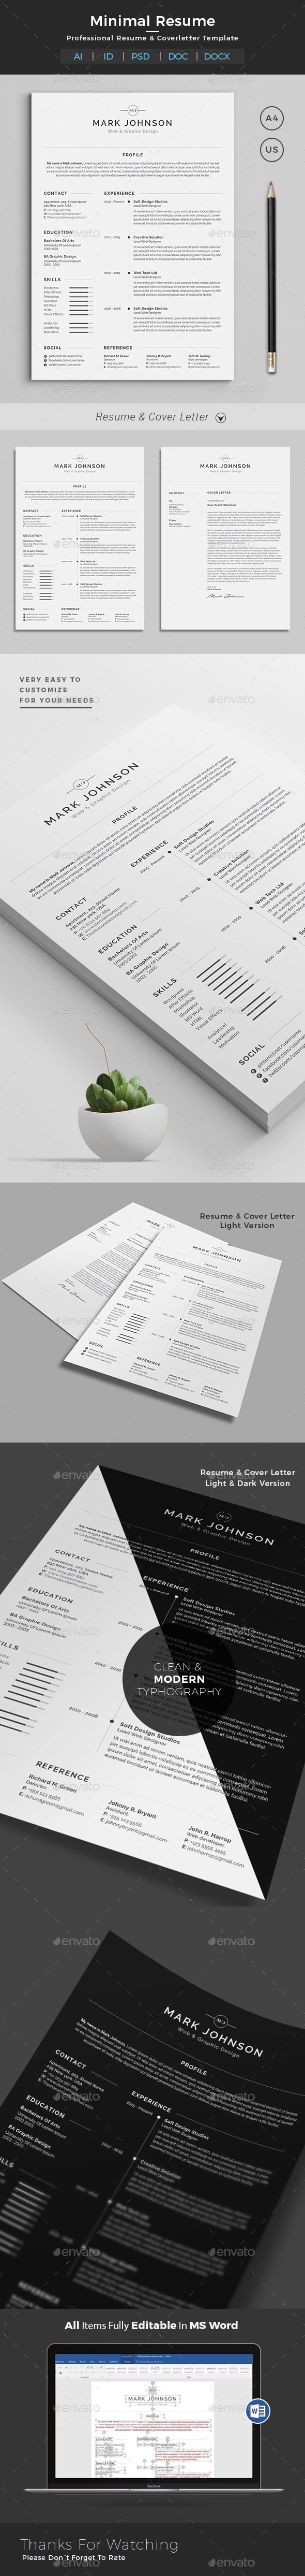 Resume Template PSD, InDesign INDD, AI A4 & US Letter